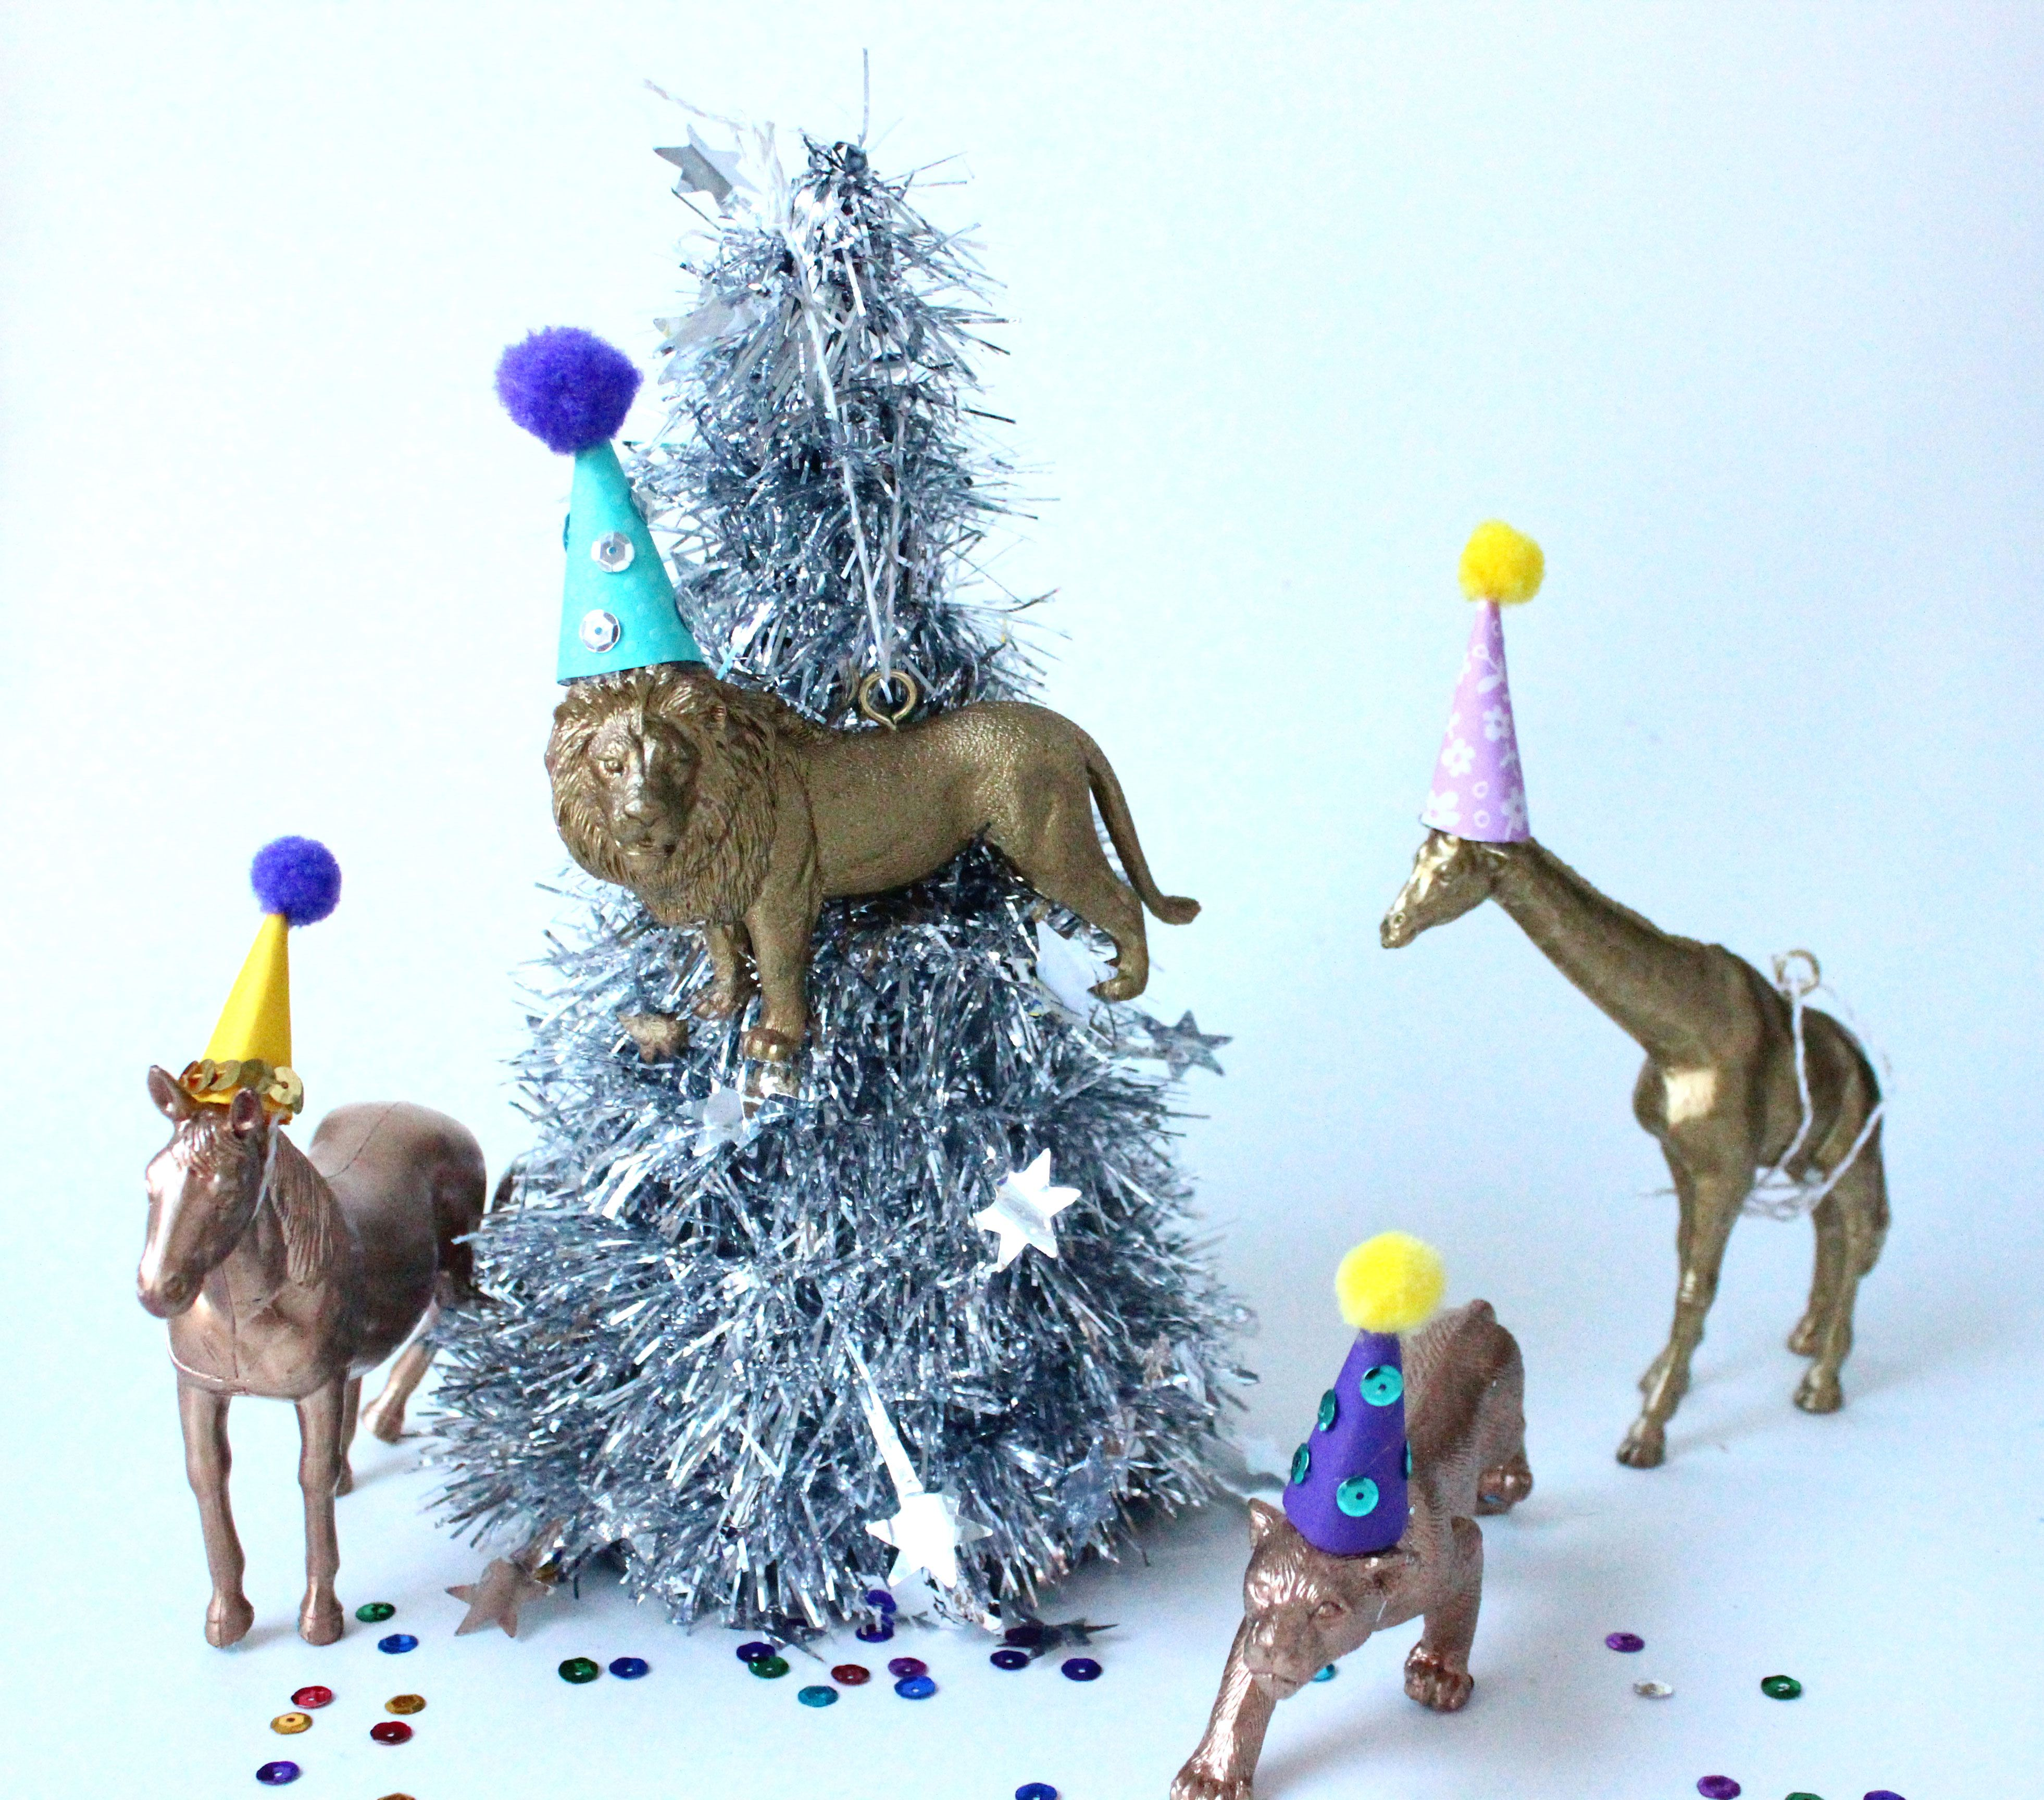 Animal ornaments - Forget Christmas Carolling These Party Animal Ornaments Are The Best And Cutest Way To Spread The Season S Cheer Whether You Adorn Your Tree With The